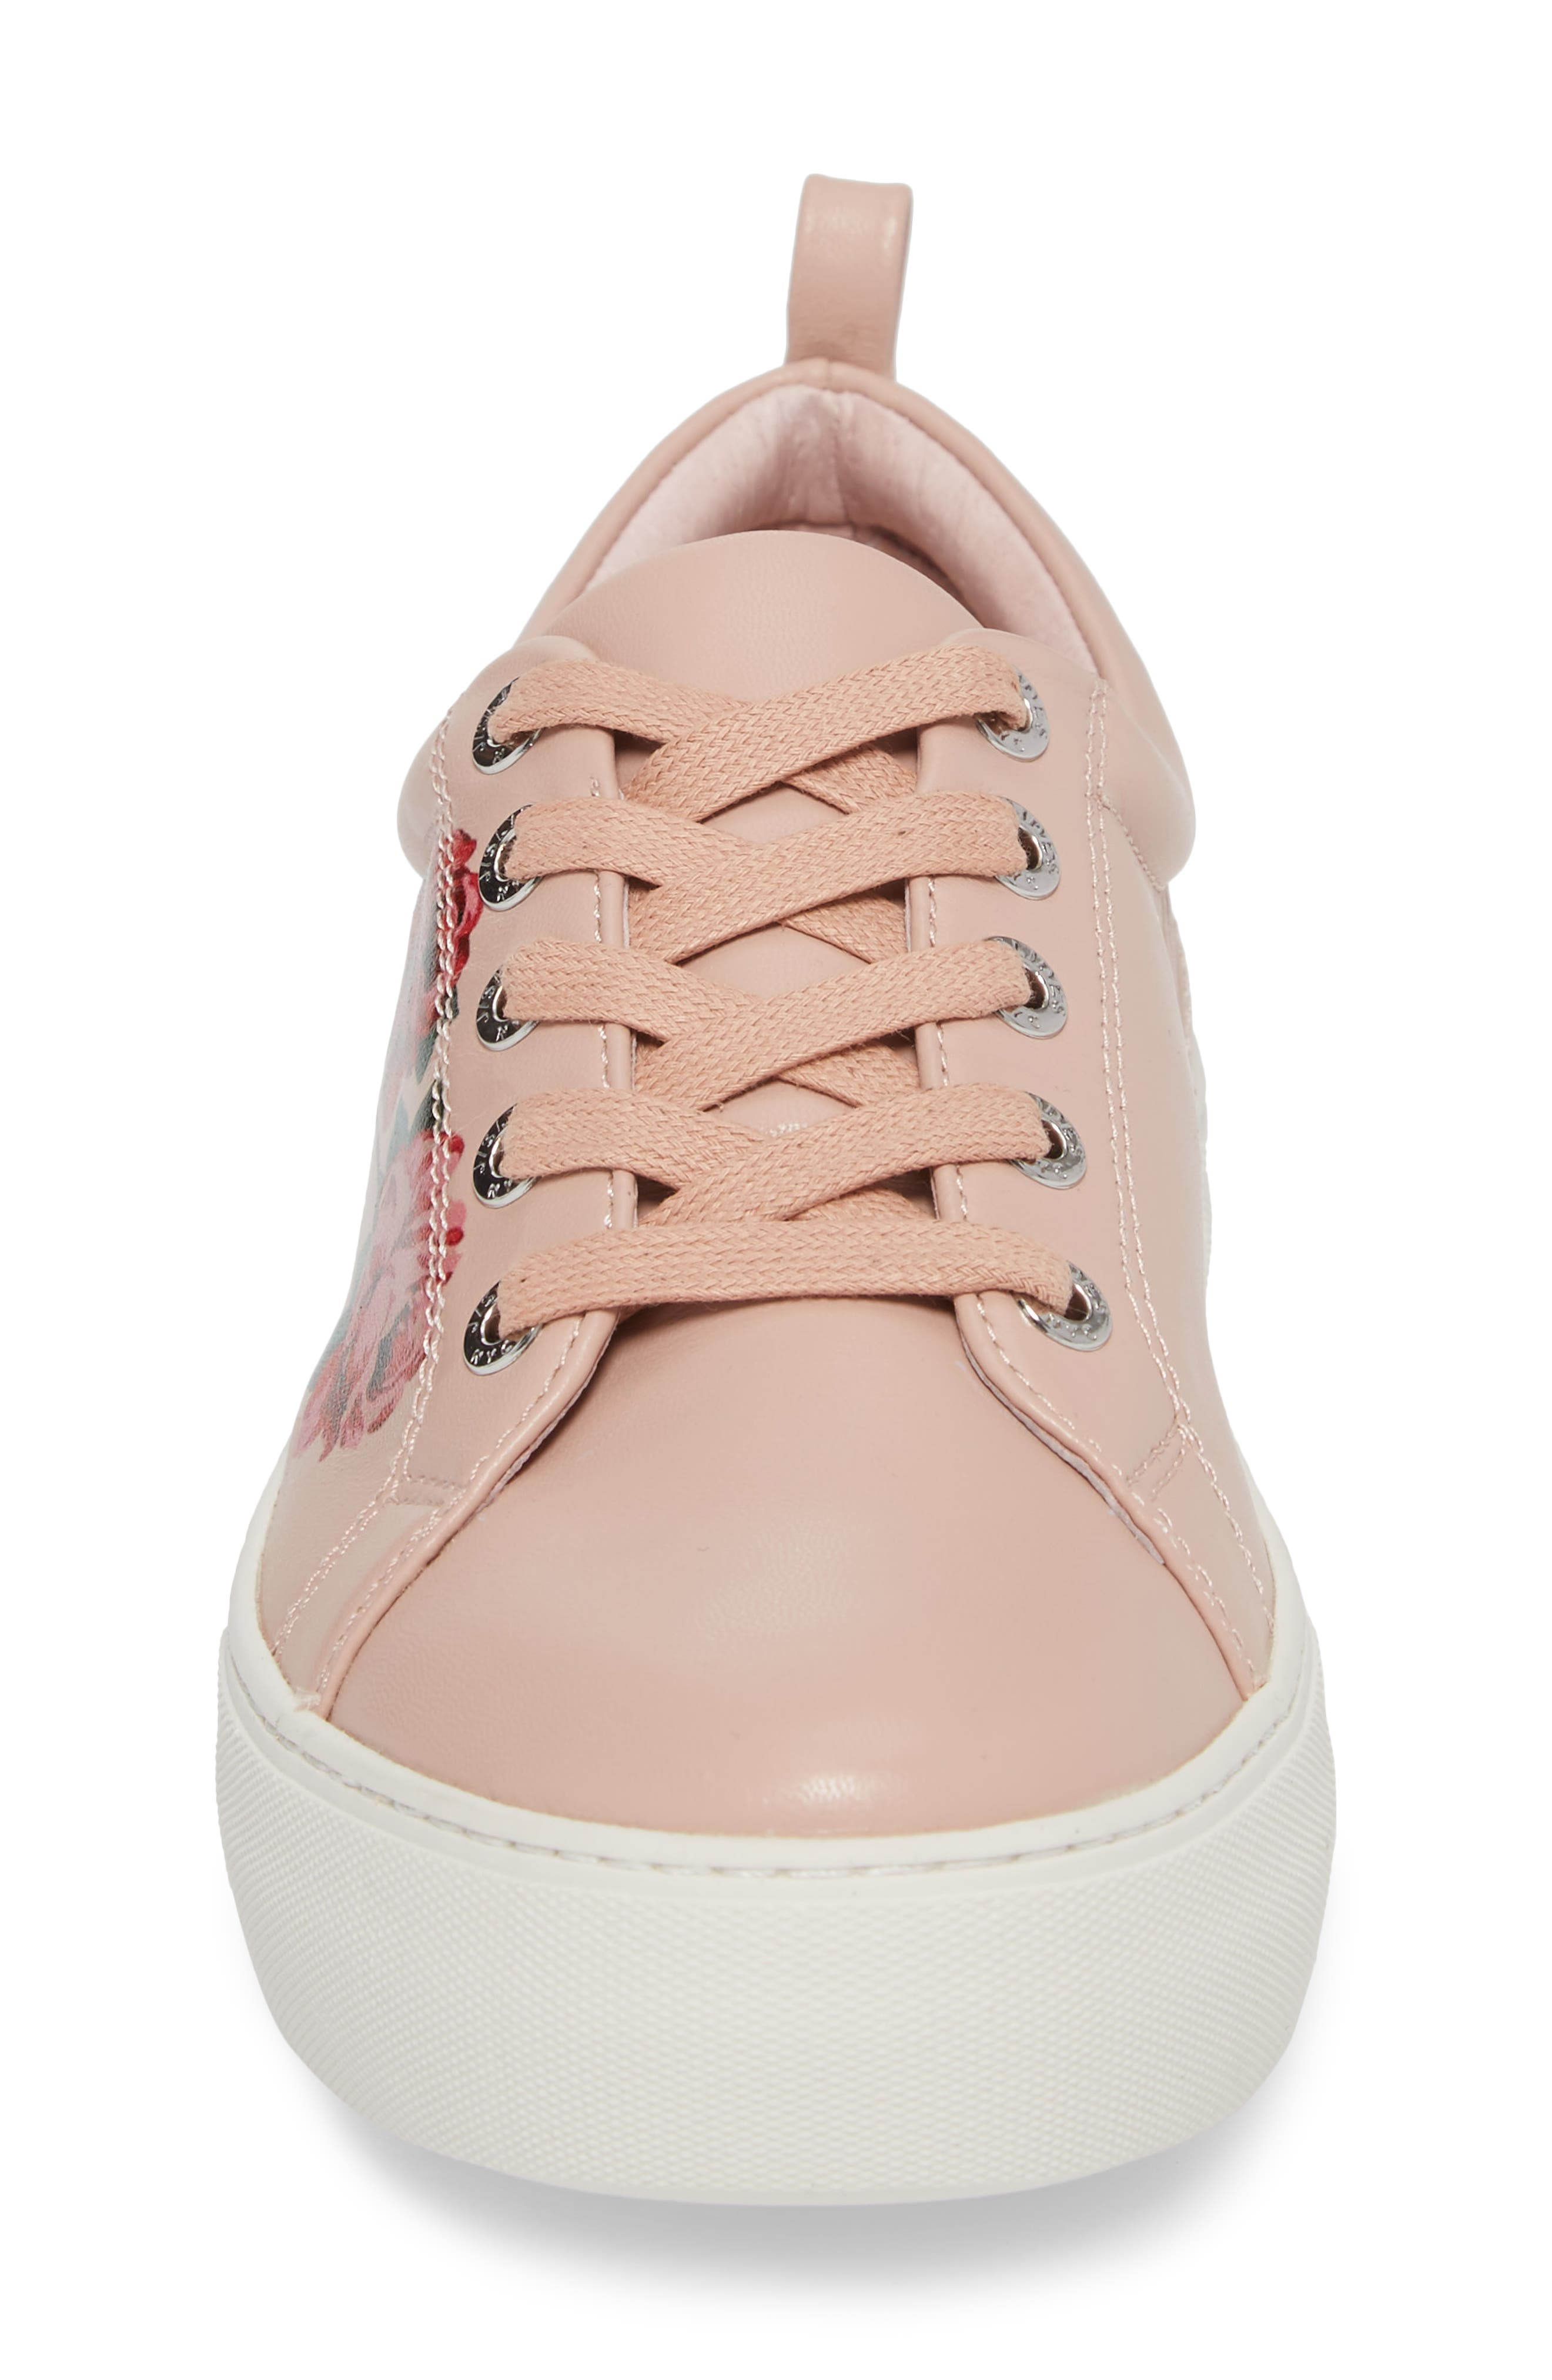 Adel Floral Sneaker,                             Alternate thumbnail 4, color,                             Pink Leather